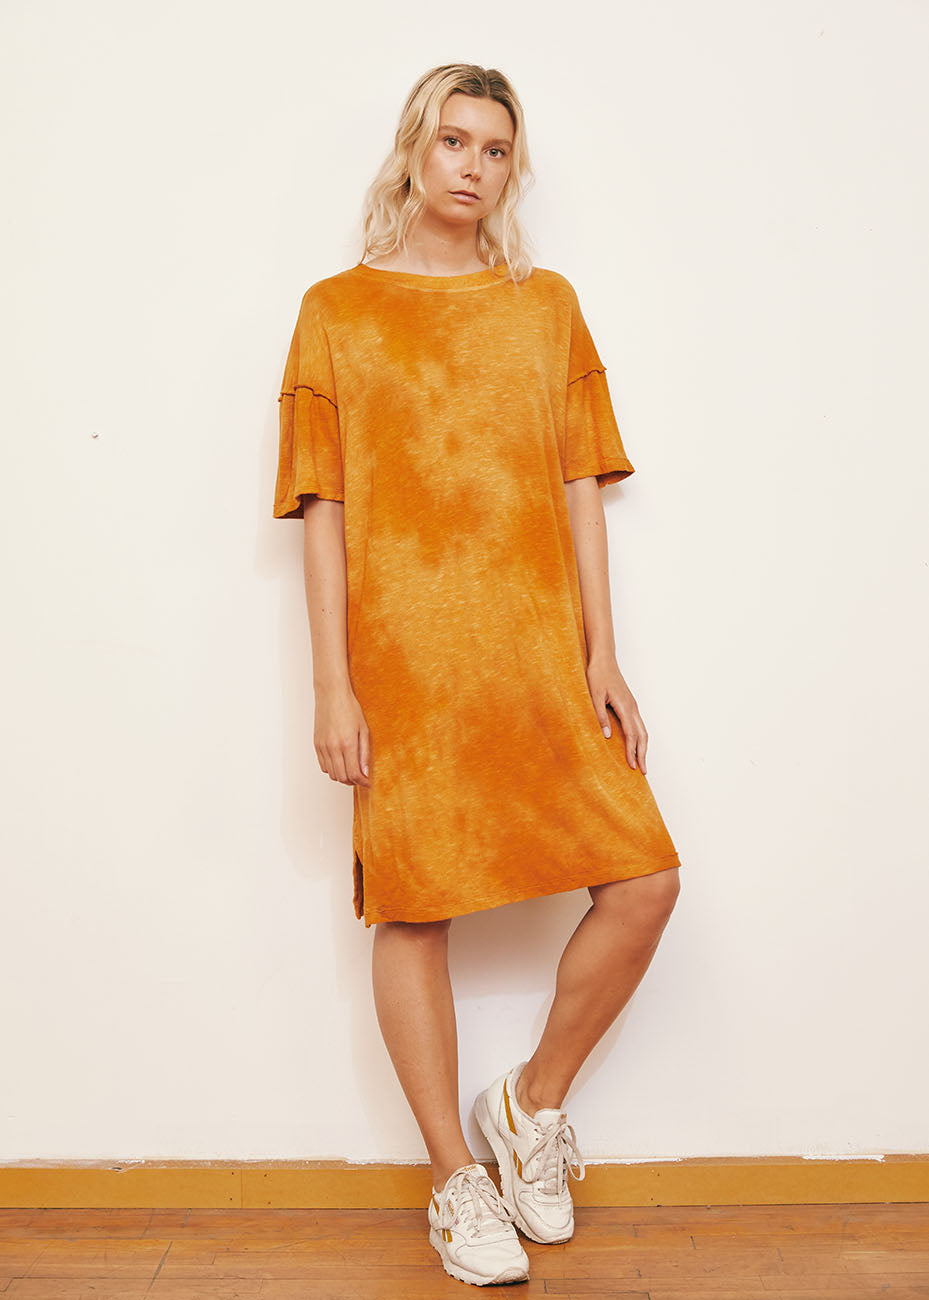 Image of Golden Oversized Tie Dye Recycled Cotton Dress